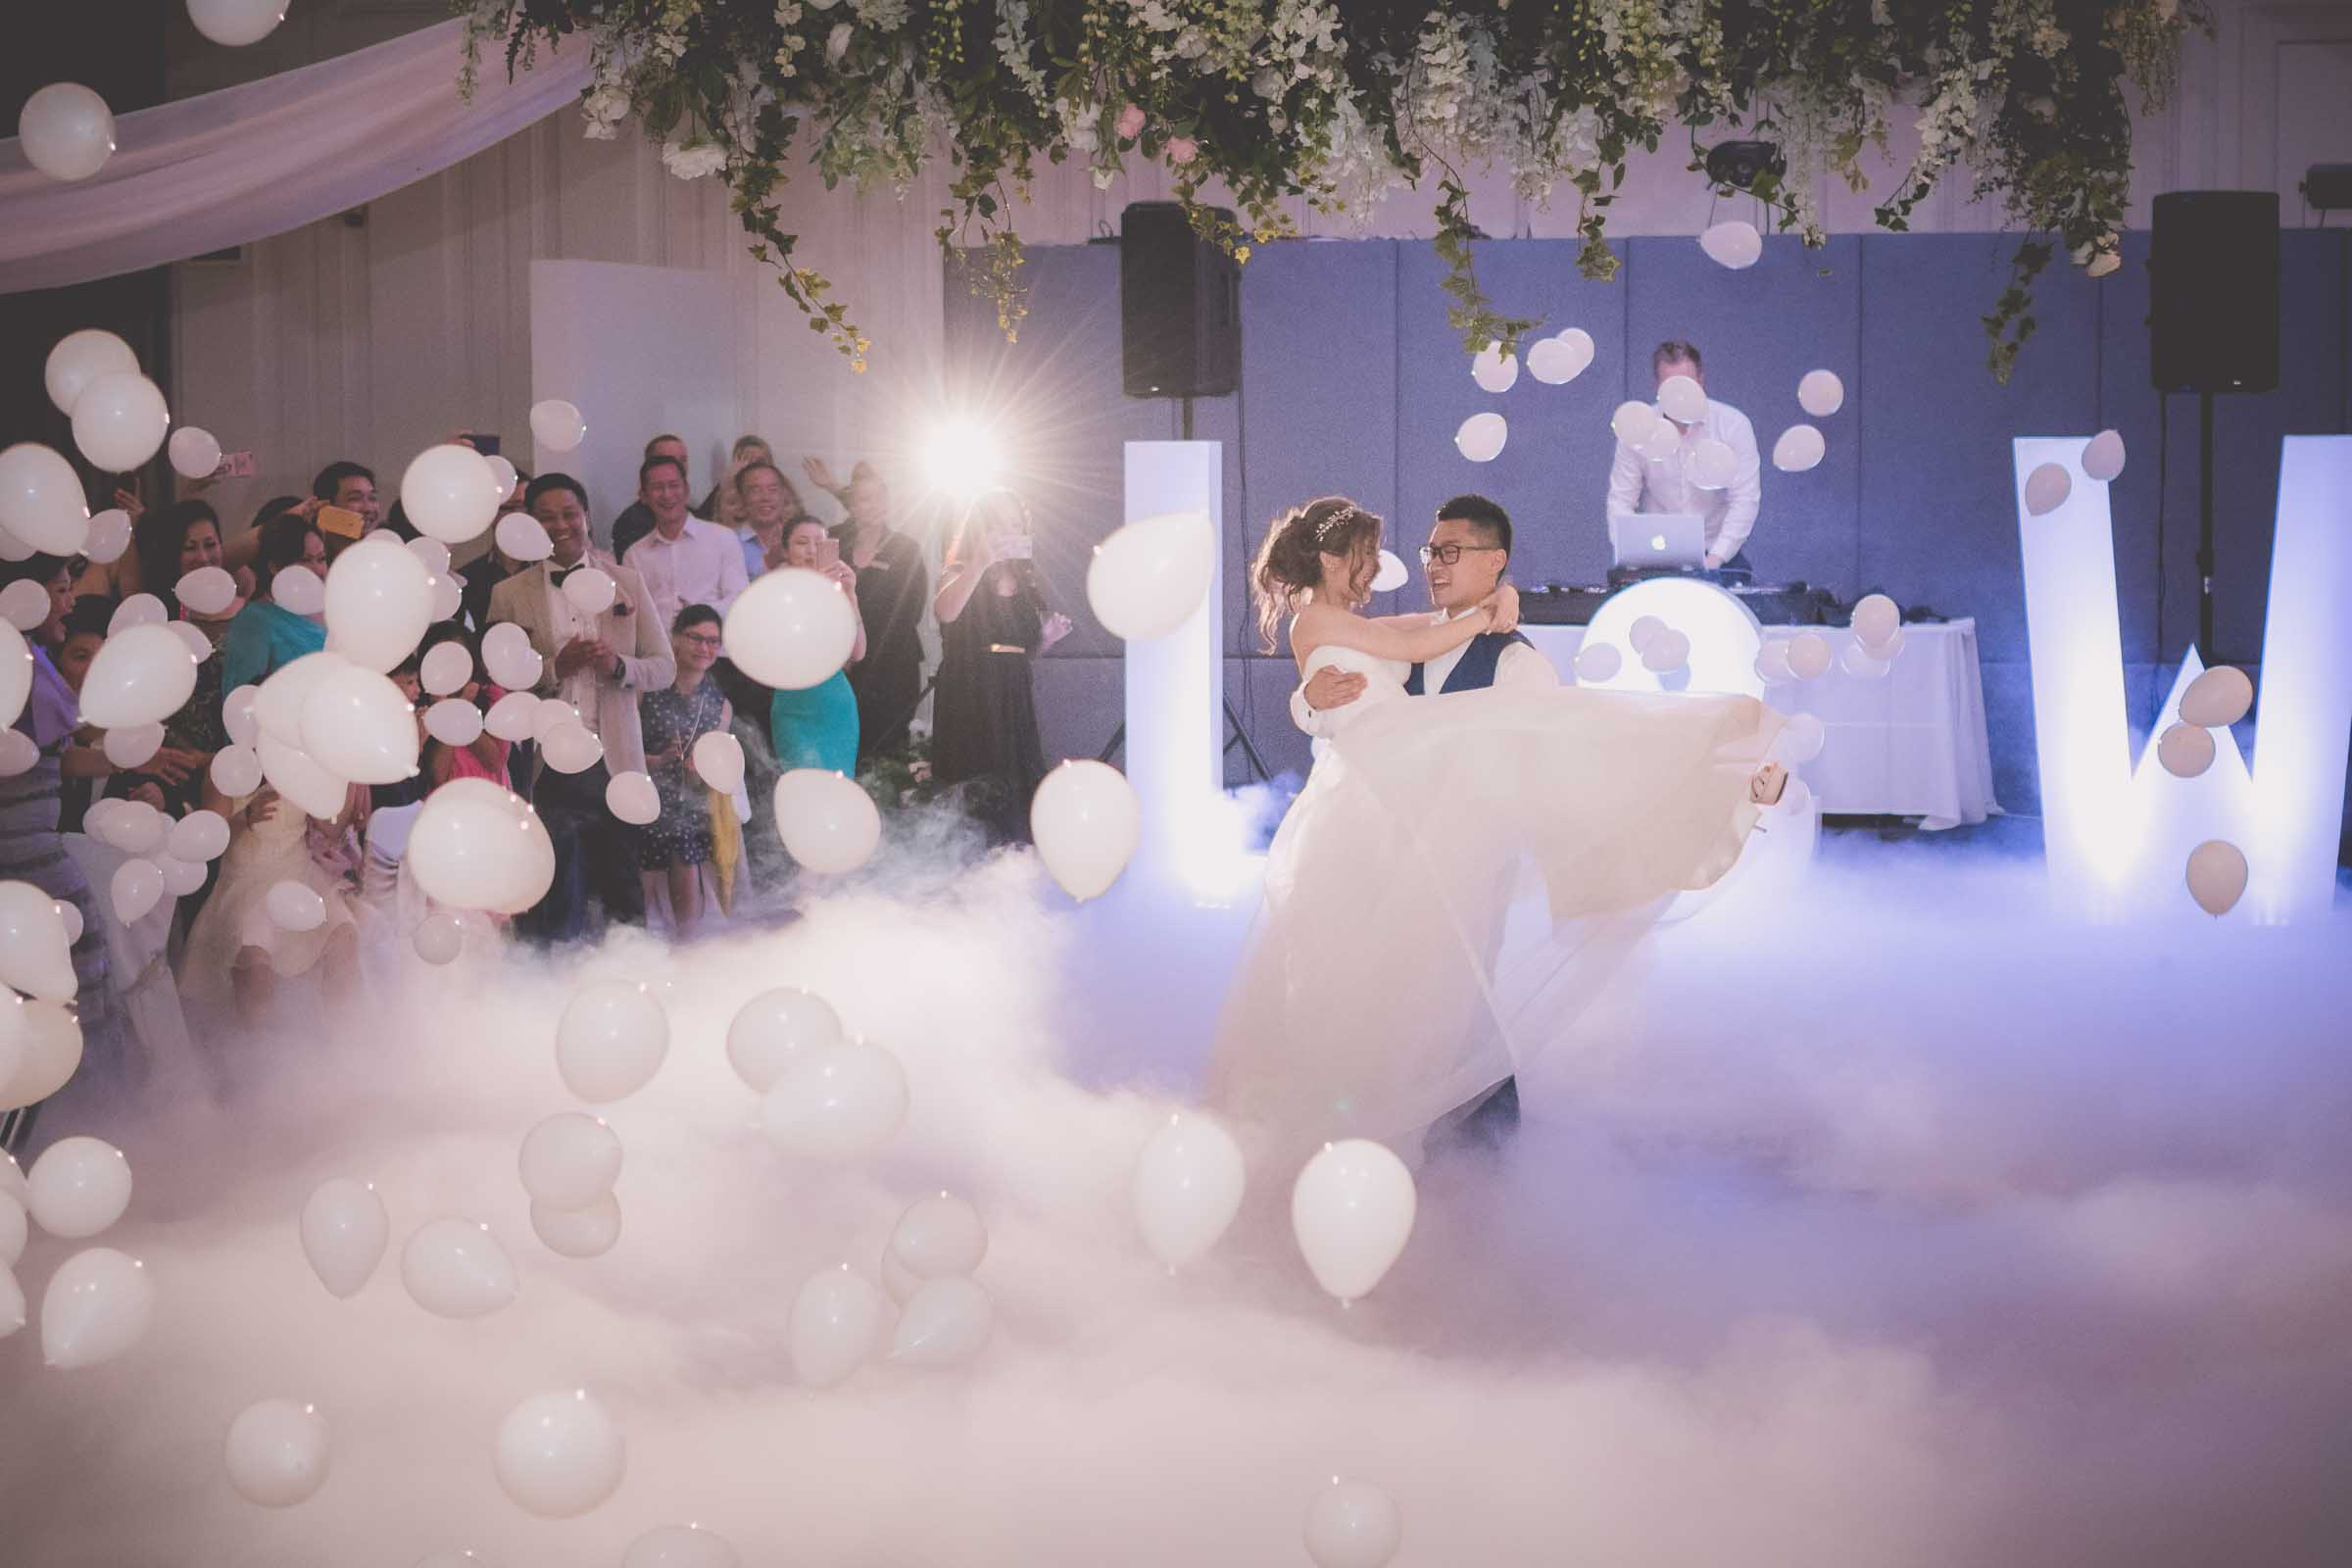 When you can't have your wedding photography in the rain you go indoors! Dancing and balloons at Leonda by The Yarra